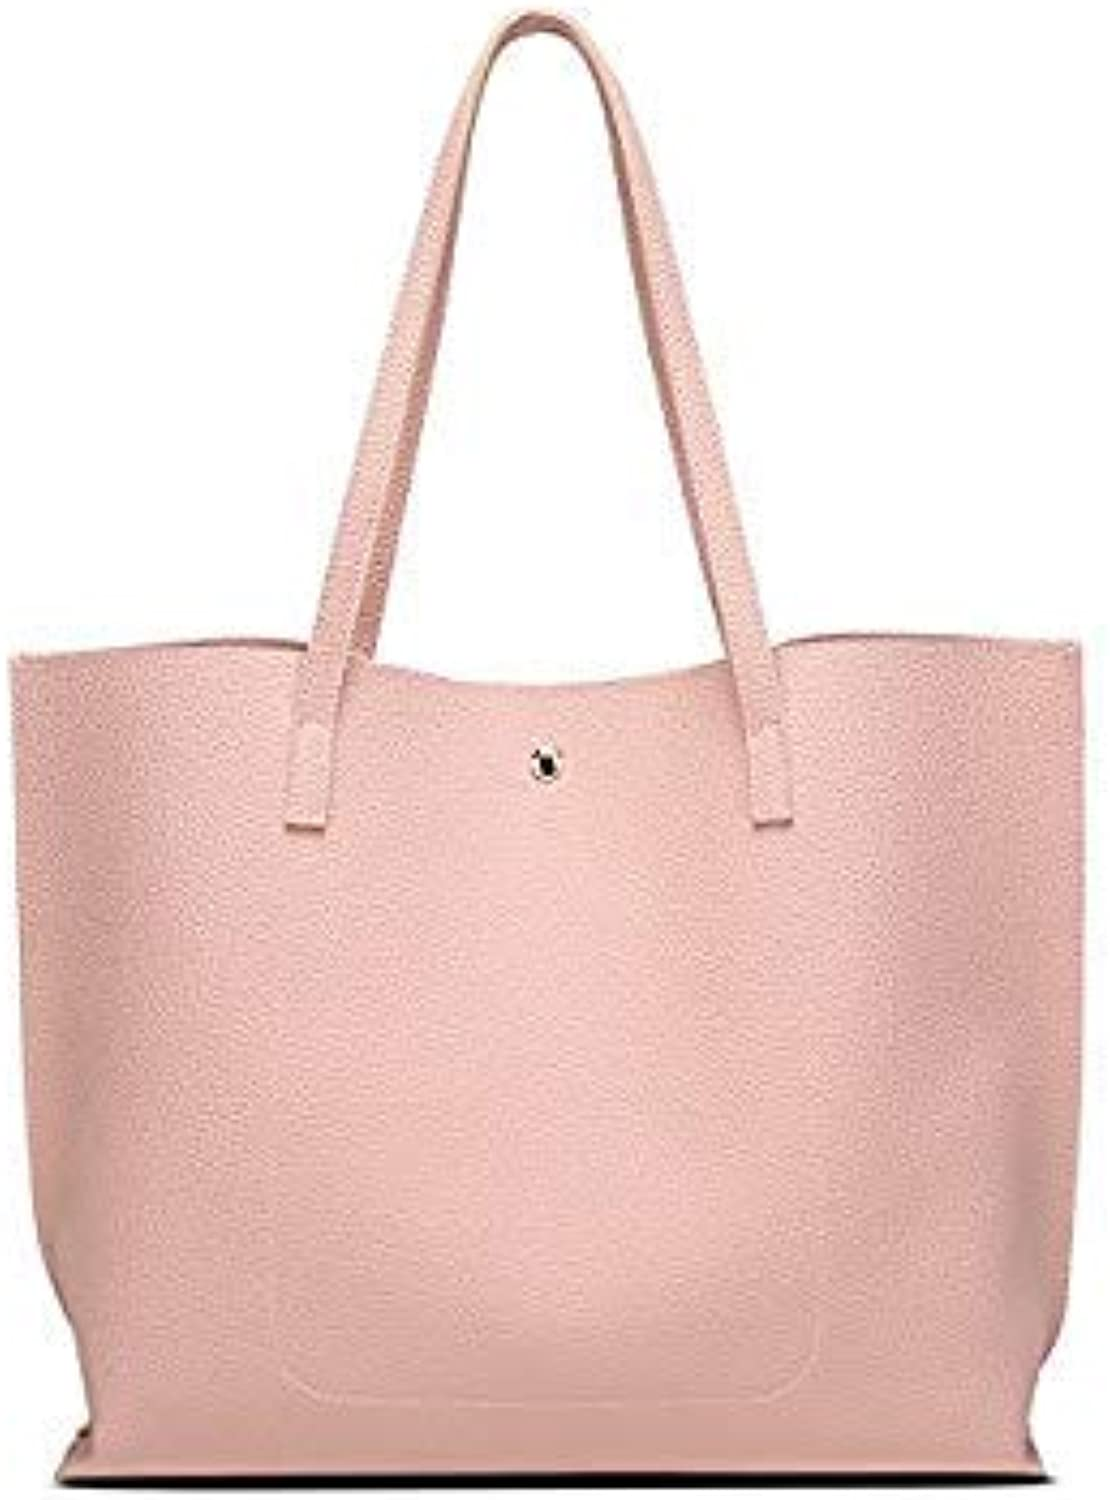 Bloomerang EAYIN Women Bag Fashion Women Leather Handbag Brief Shoulder Bags Large Capacity Luxury Handbags Tote Bags Design color Pink 36x11x30cm